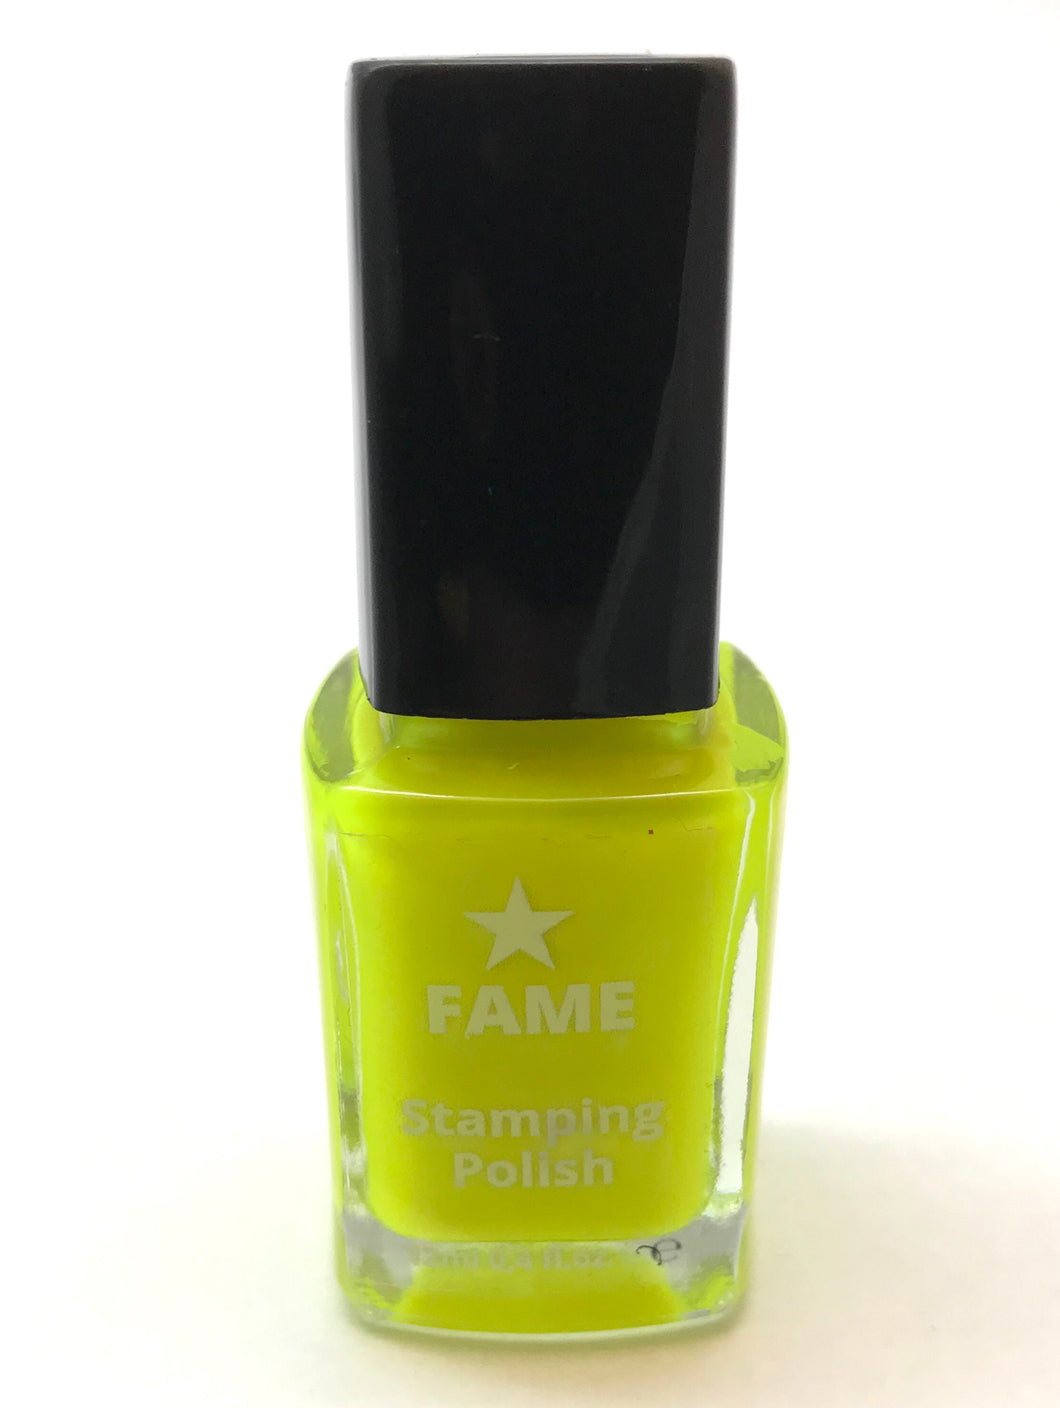 Fame Stamping Polish - Neon Yellow - Nirvana Nail and Beauty Supplies